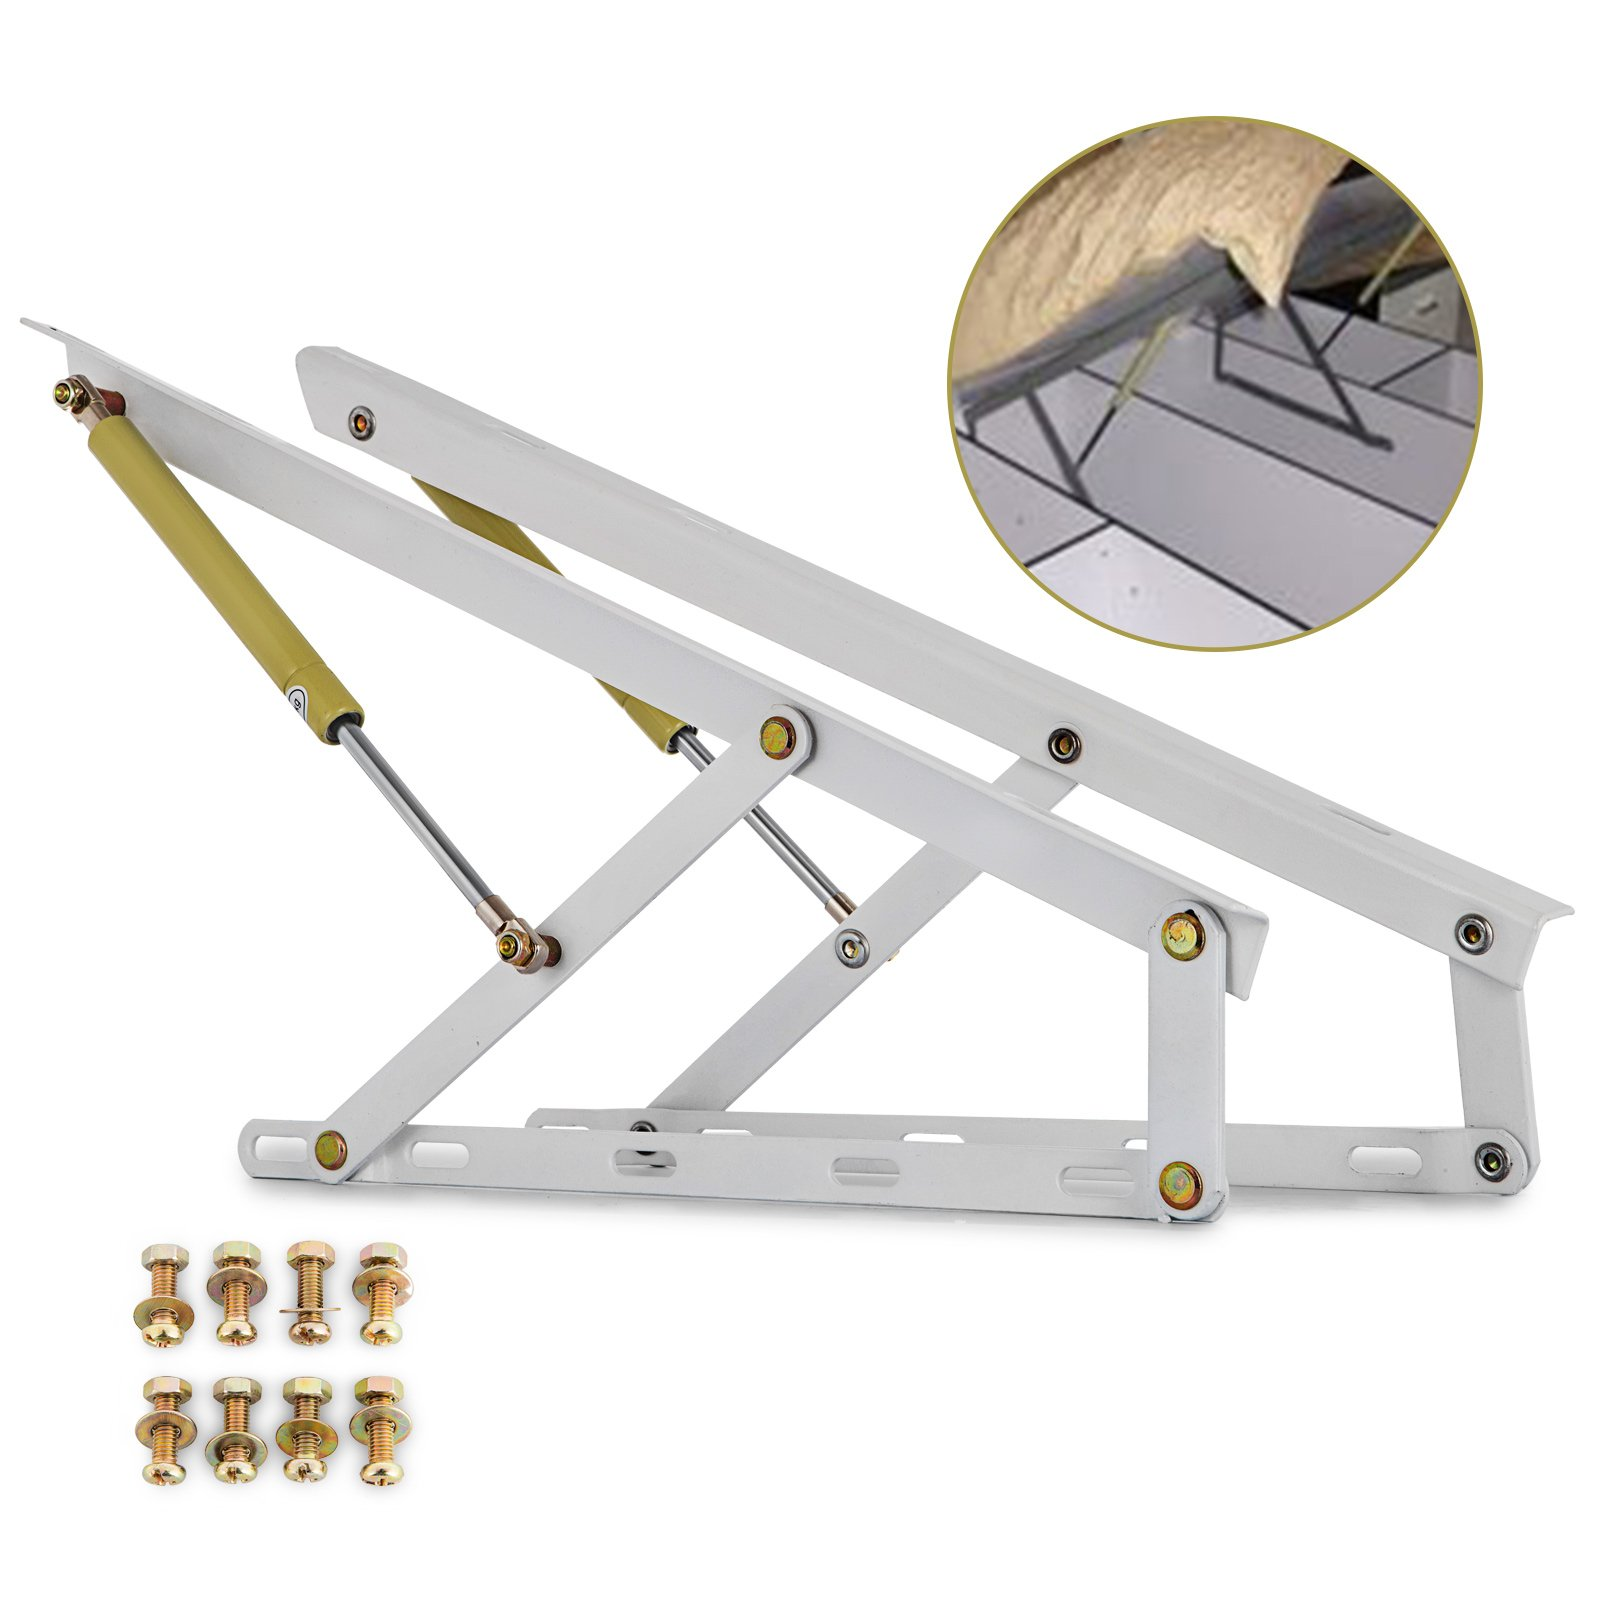 Happybuy Pair 2FT Pneumatic Storage Bed Lift Mechanism Heavy Duty Gas Spring Bed Storage Lift Kit Box Bed Sofa Storage Space Saving DIY Project Lifter Lift up Hardware White (W60)